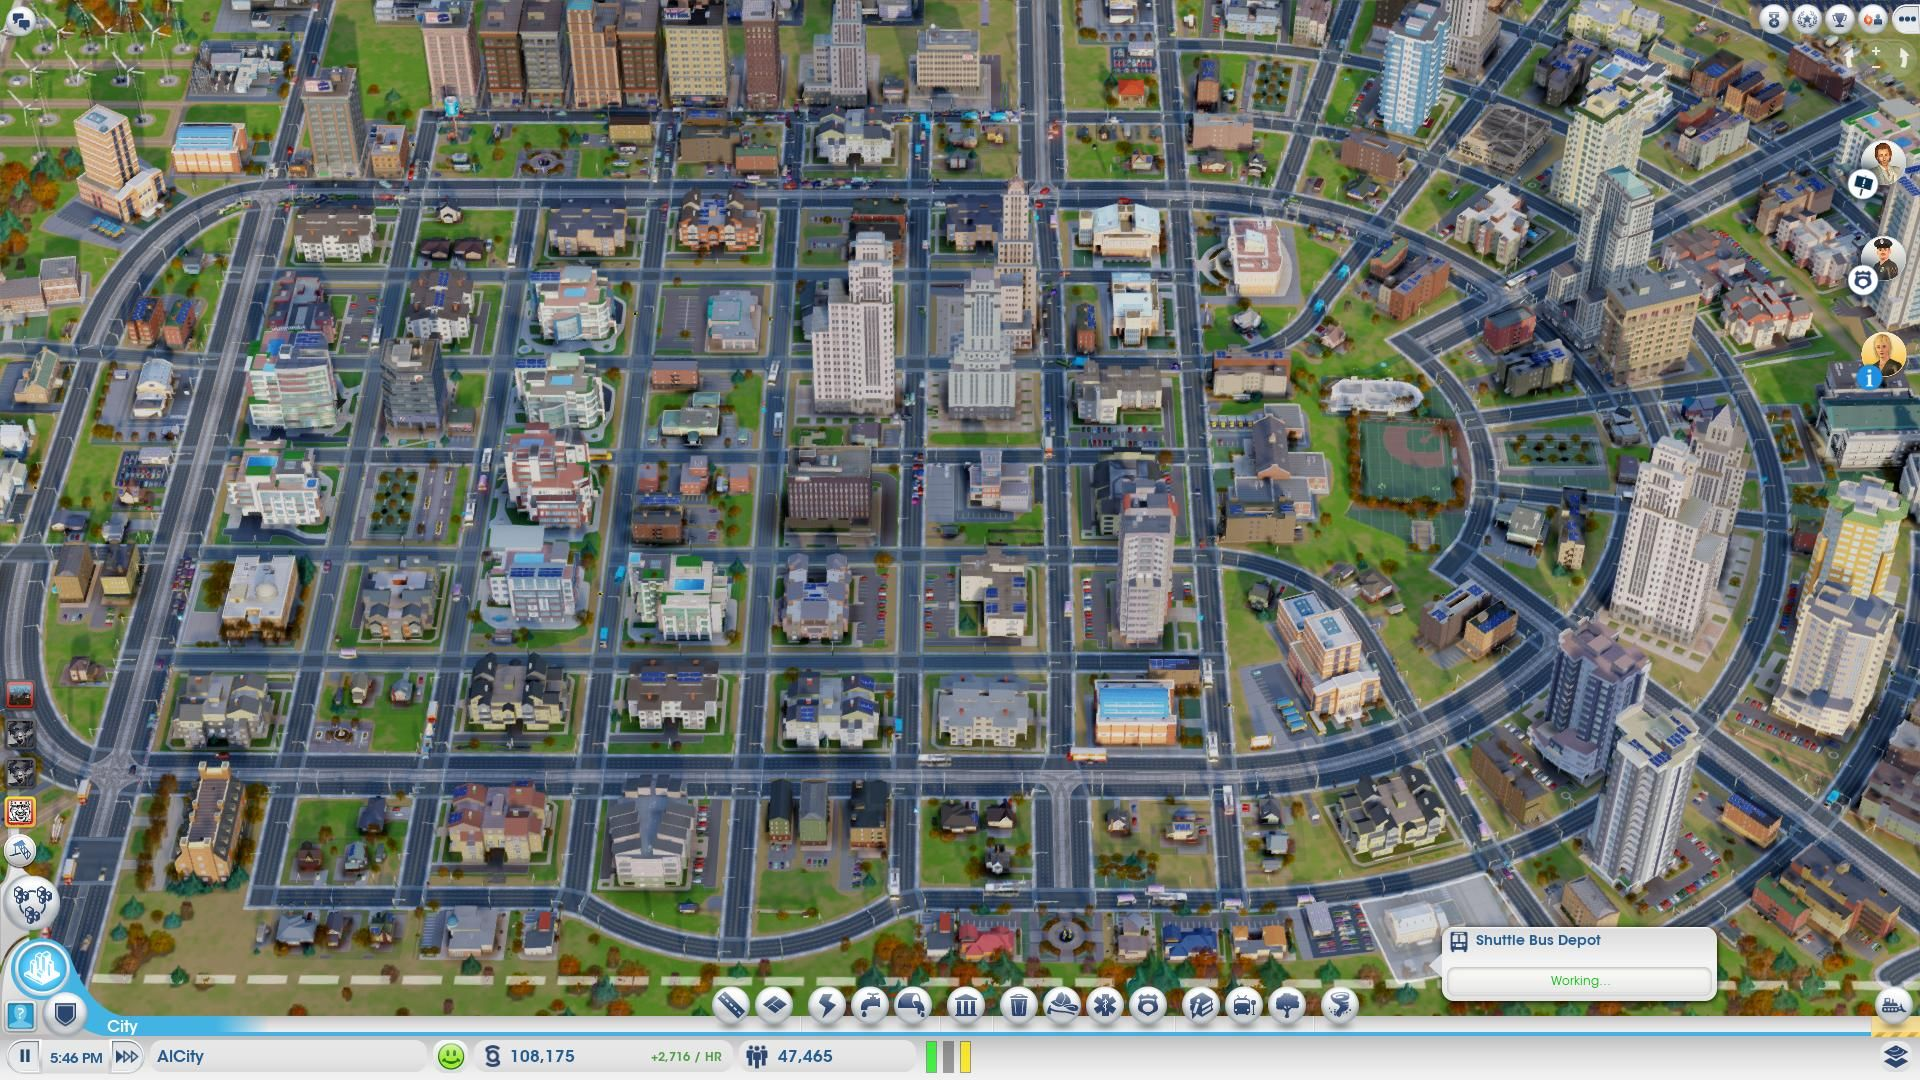 Simcity 2013 Road System Arced Roads City Layout Simcity Buildit Layout Simcity Layout